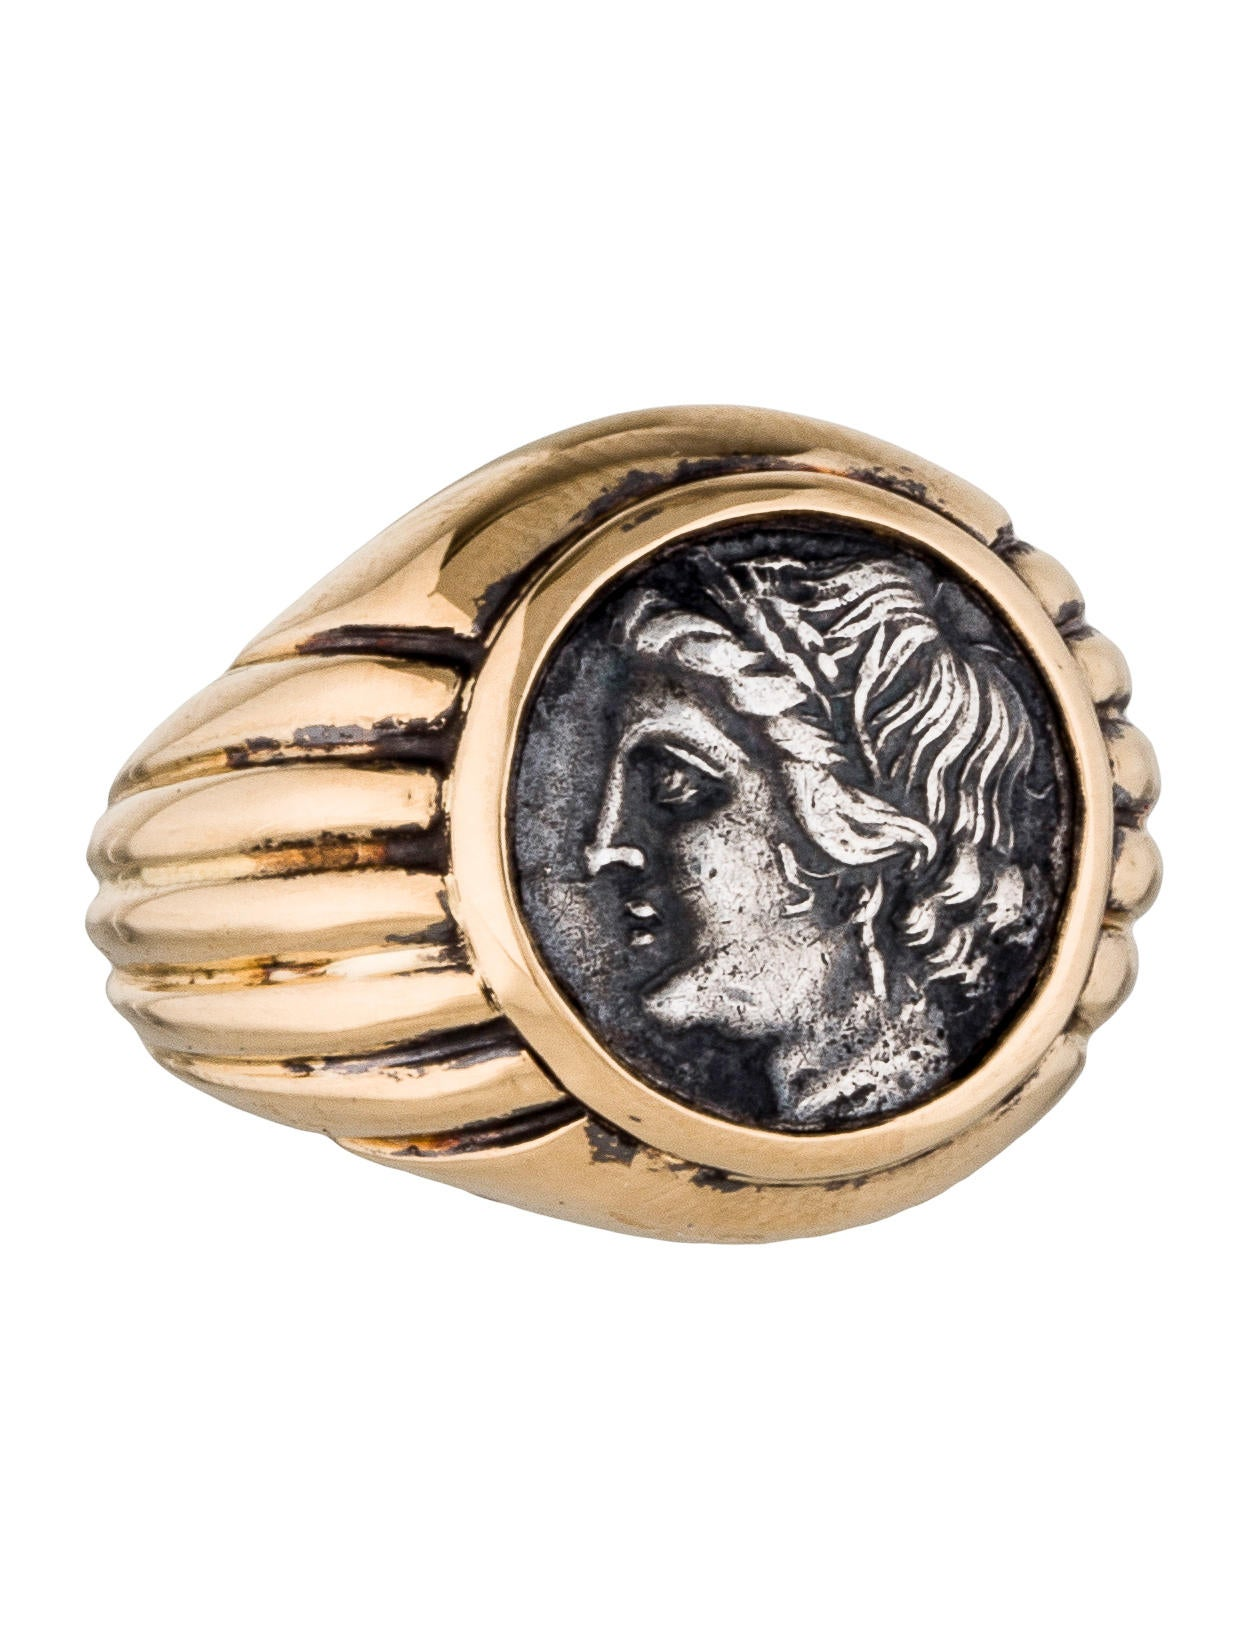 Is Monet Jewelry Real >> Bvlgari Monete Antiche Coin Ring - Rings - BUL23854 | The RealReal